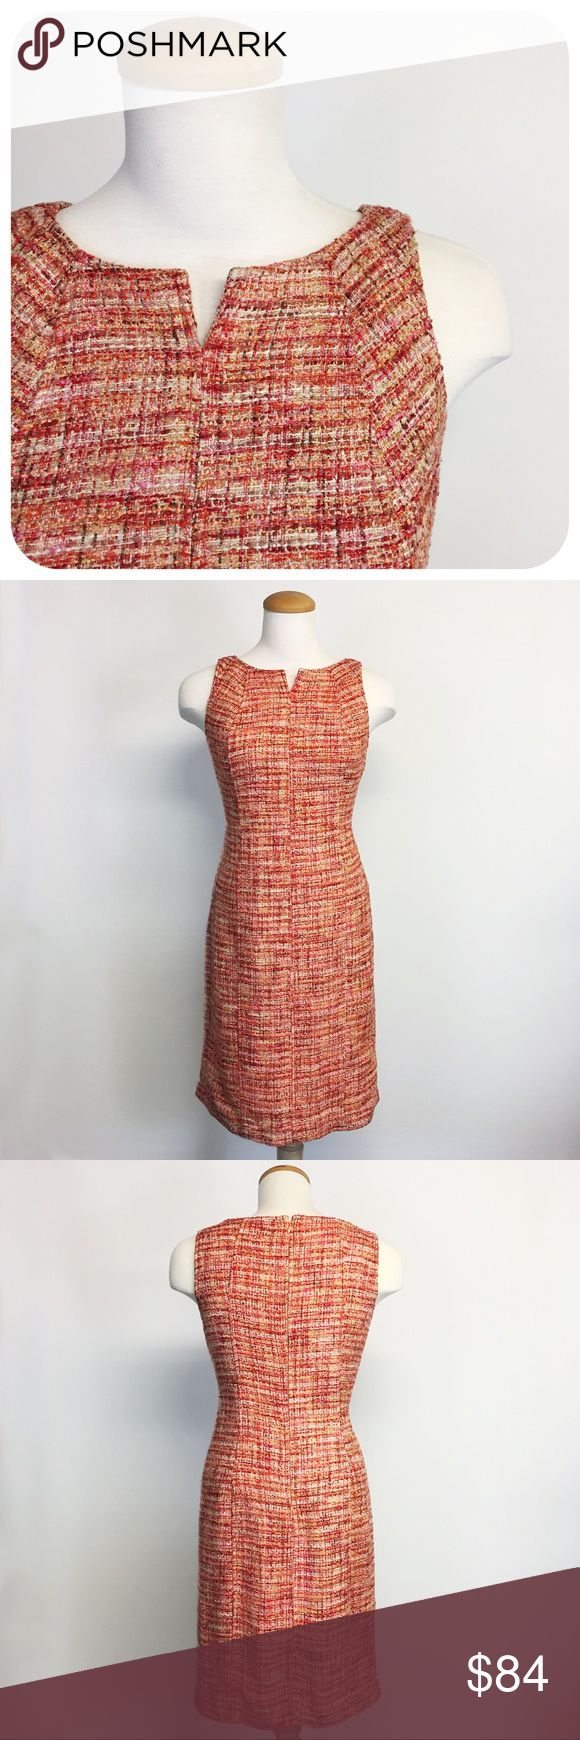 """{{ Talbots }} Pink & Orange Bouclé Tweed Dress Beautiful dress for fall! Orange, red, pink, cream, and yellow threads and yarns woven together in this nubby tweed shift dress by Talbotts. Great texture and color! Sleeveless with a notched v neckline.   Like new.   Measurements: Length - 39"""" Bust - 18.5"""" (measured lying flat) Waist - 17"""" (measured lying flat)  Dress only. Talbots Dresses Midi"""